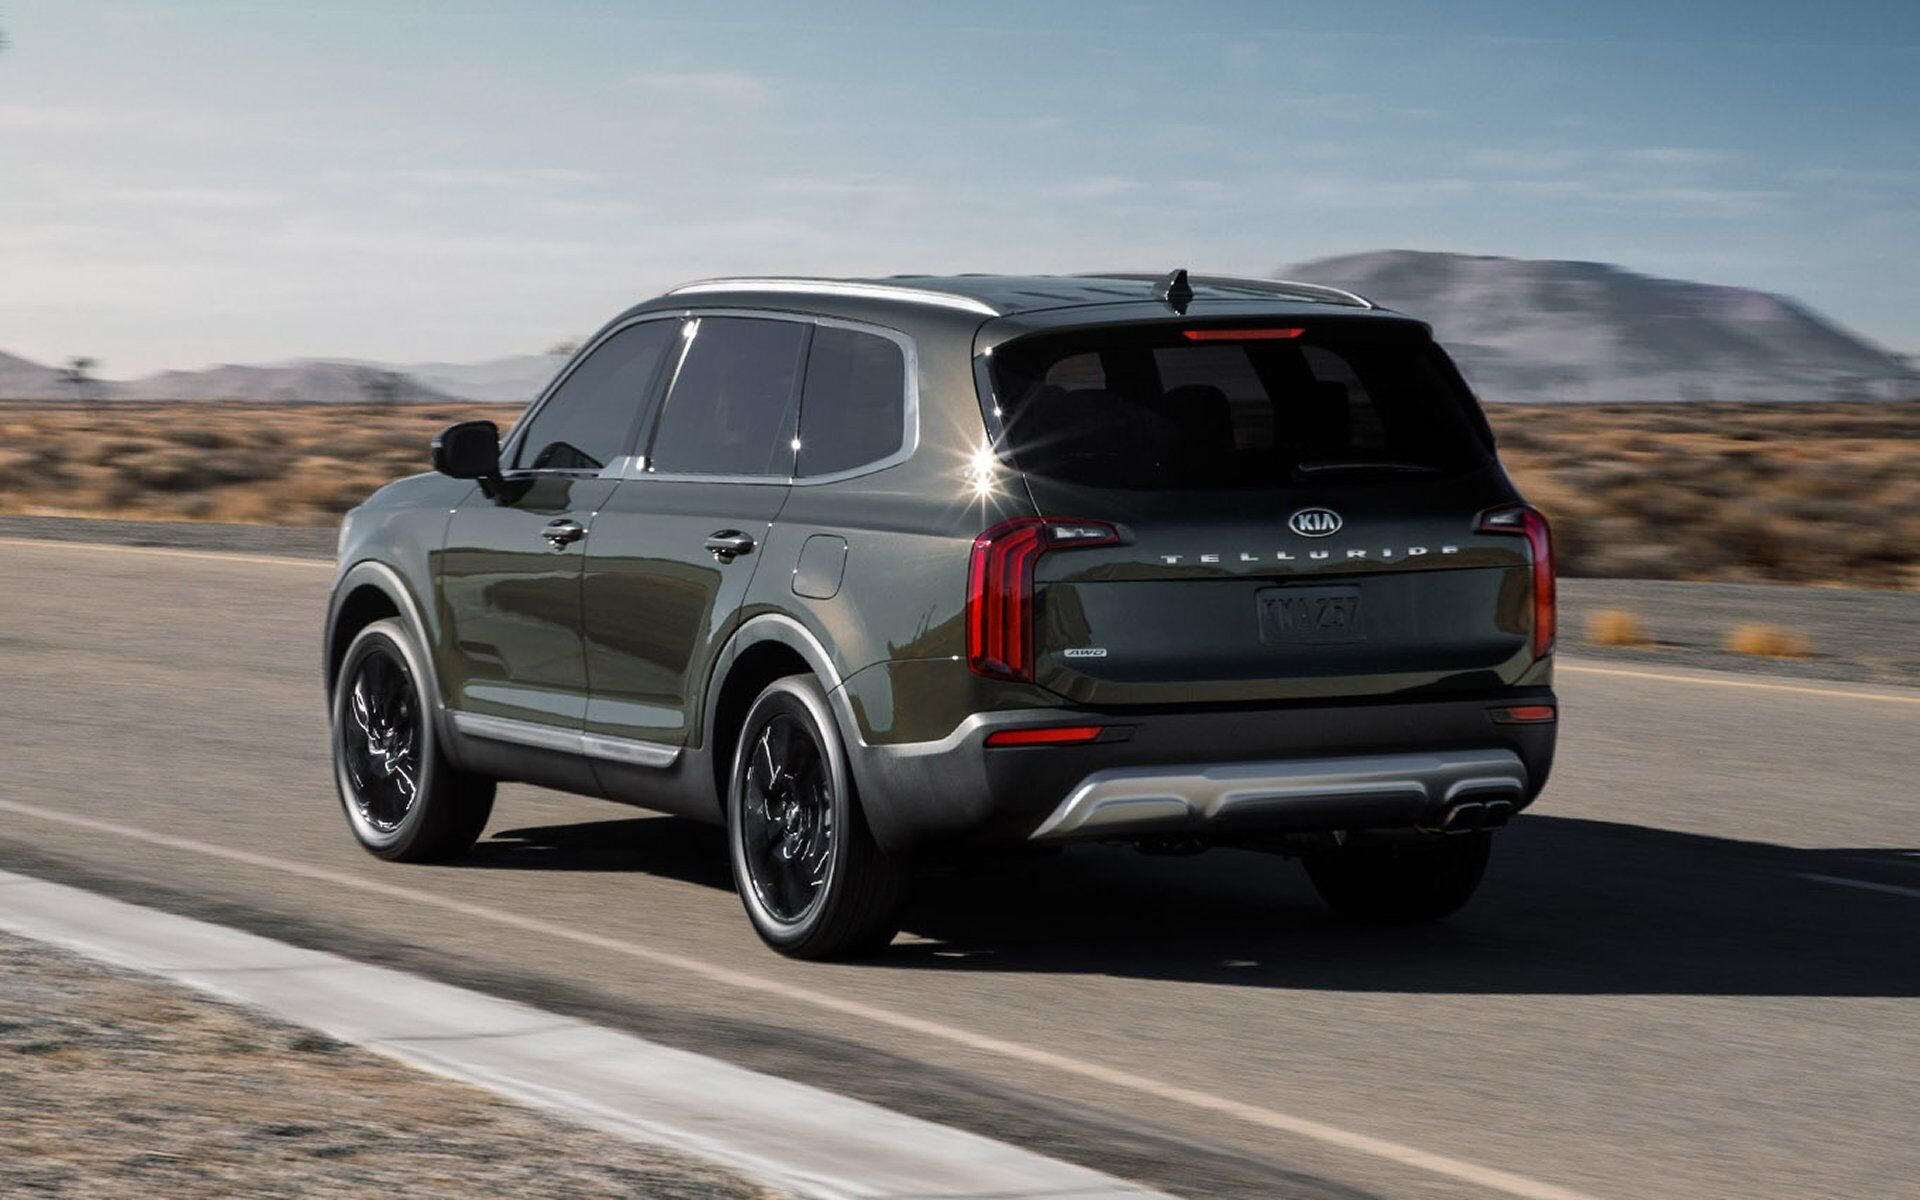 Rear view of Kia Telluride